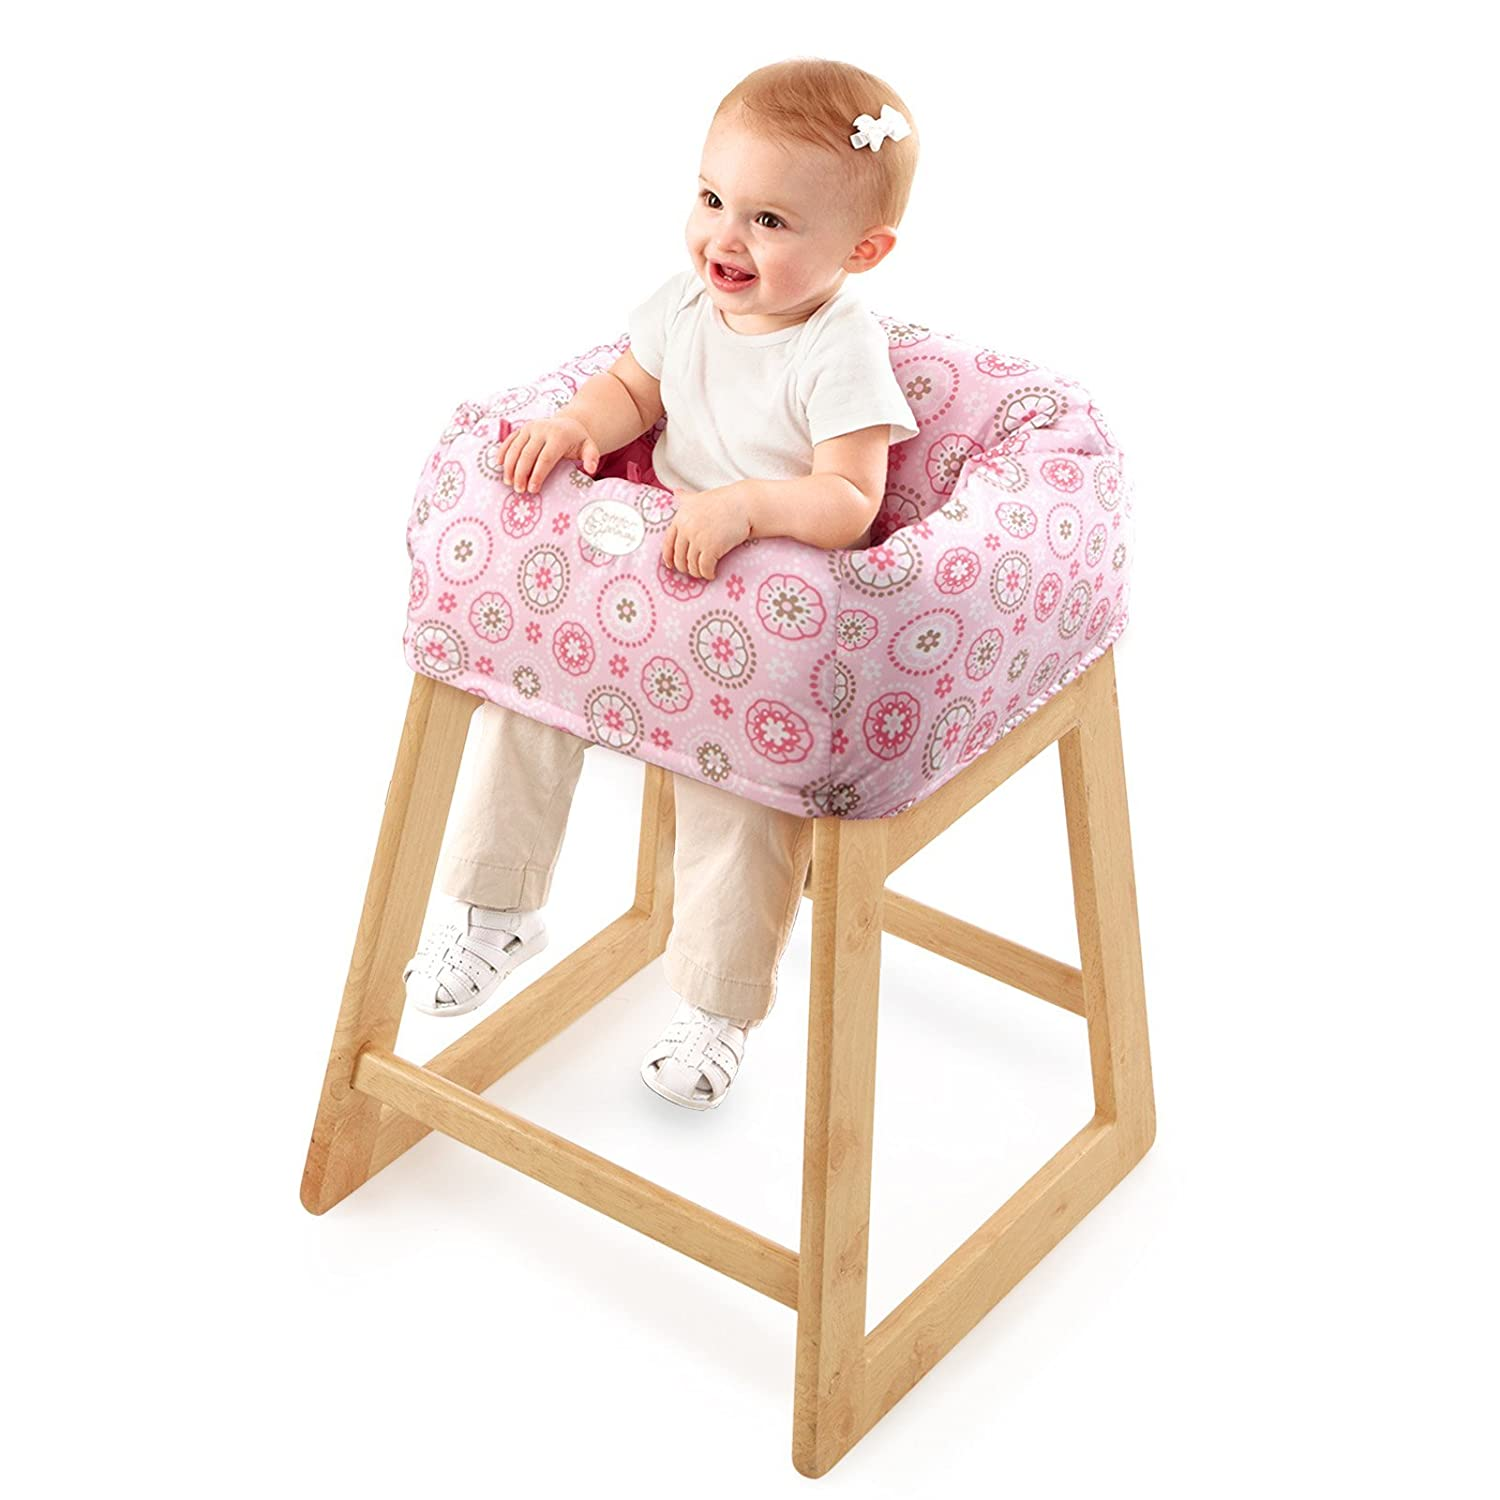 High Chair Covers Shopping Cart High Chair Cover Portable Baby Toddler Safe